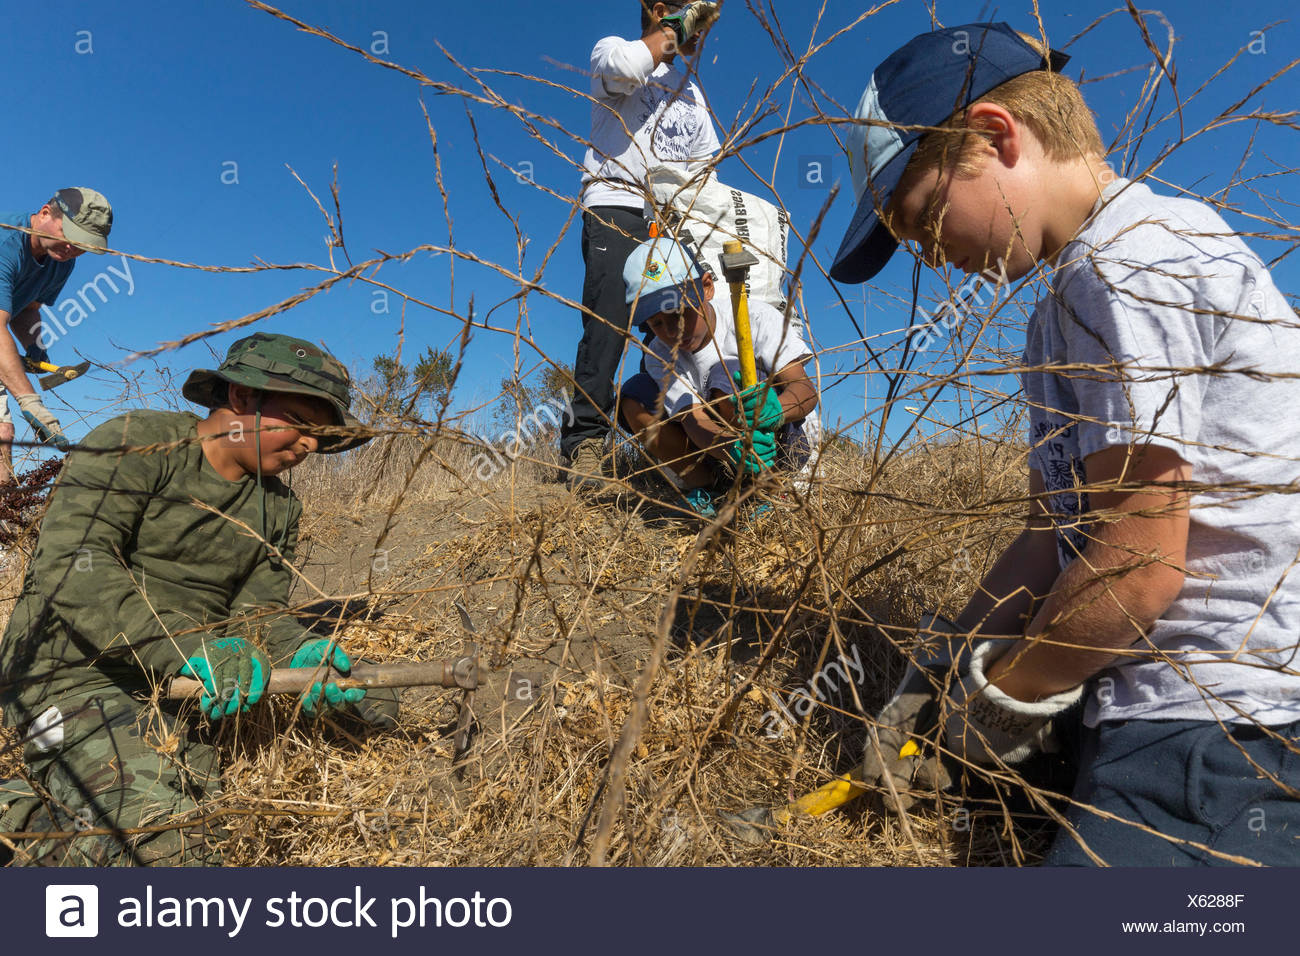 Volunteers for Save the Bay weeding invasive species at Byxbee Park,Palo Alto,CA.The invasive species were mustard,fennel and stick wort (Dittrithia grabbiness. - Stock Image